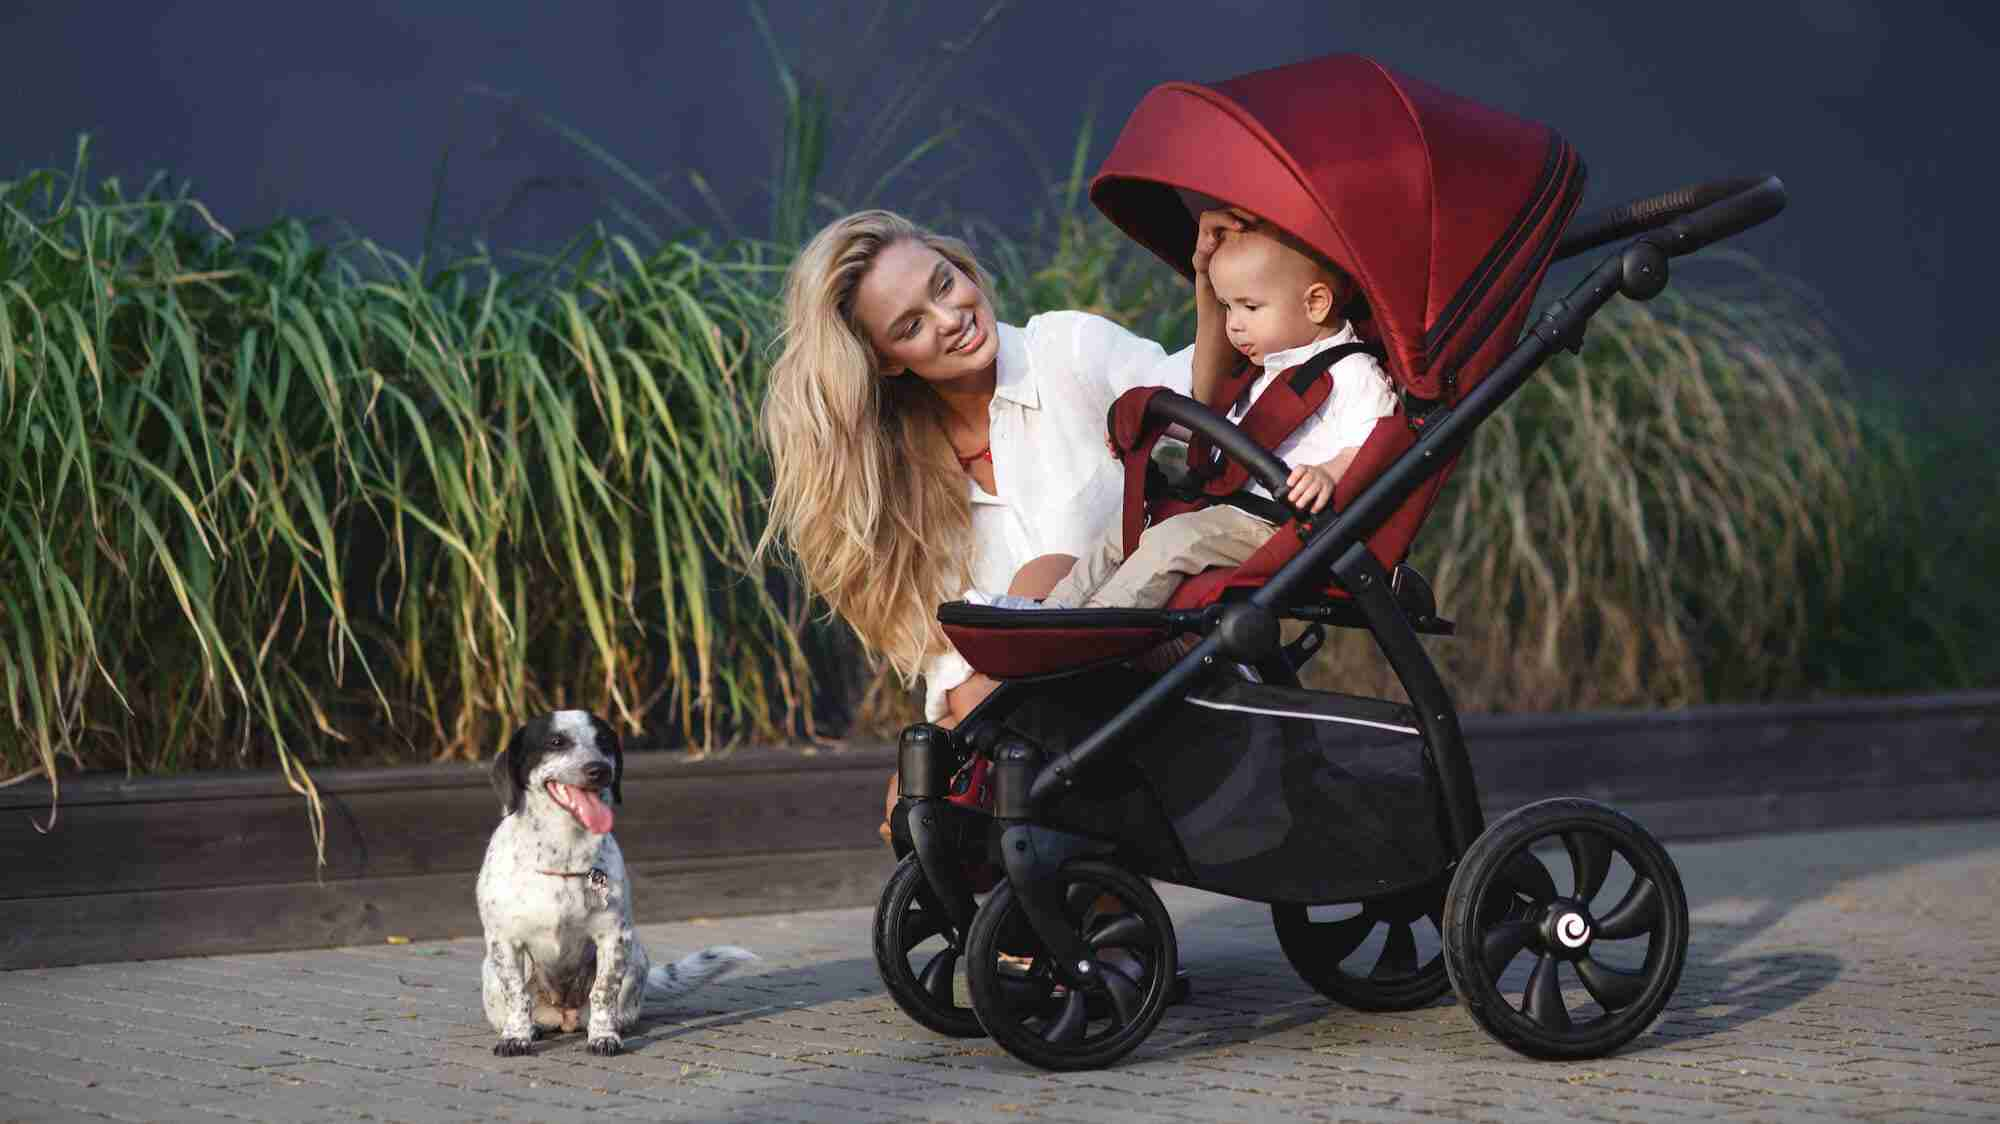 Selecting a stroller for your baby